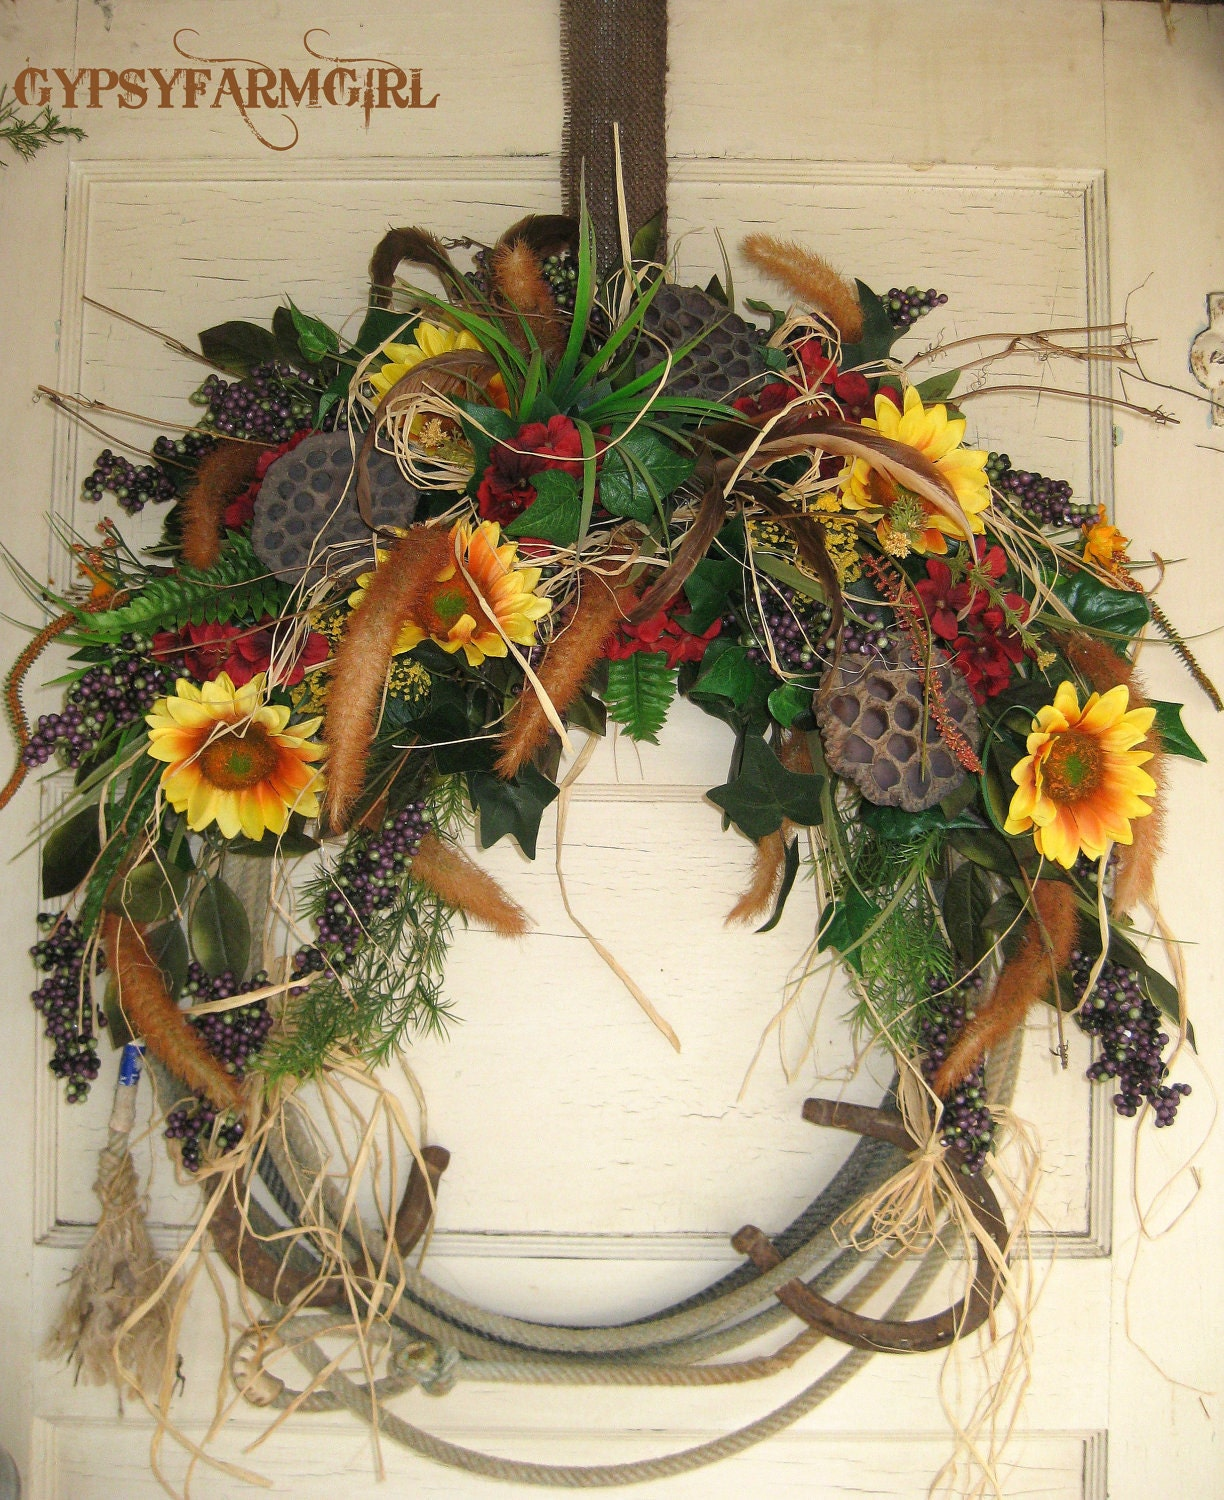 Western Ideas For Home Decorating: Rope Wreath With Horseshoes Cowboy Western Home Decor On